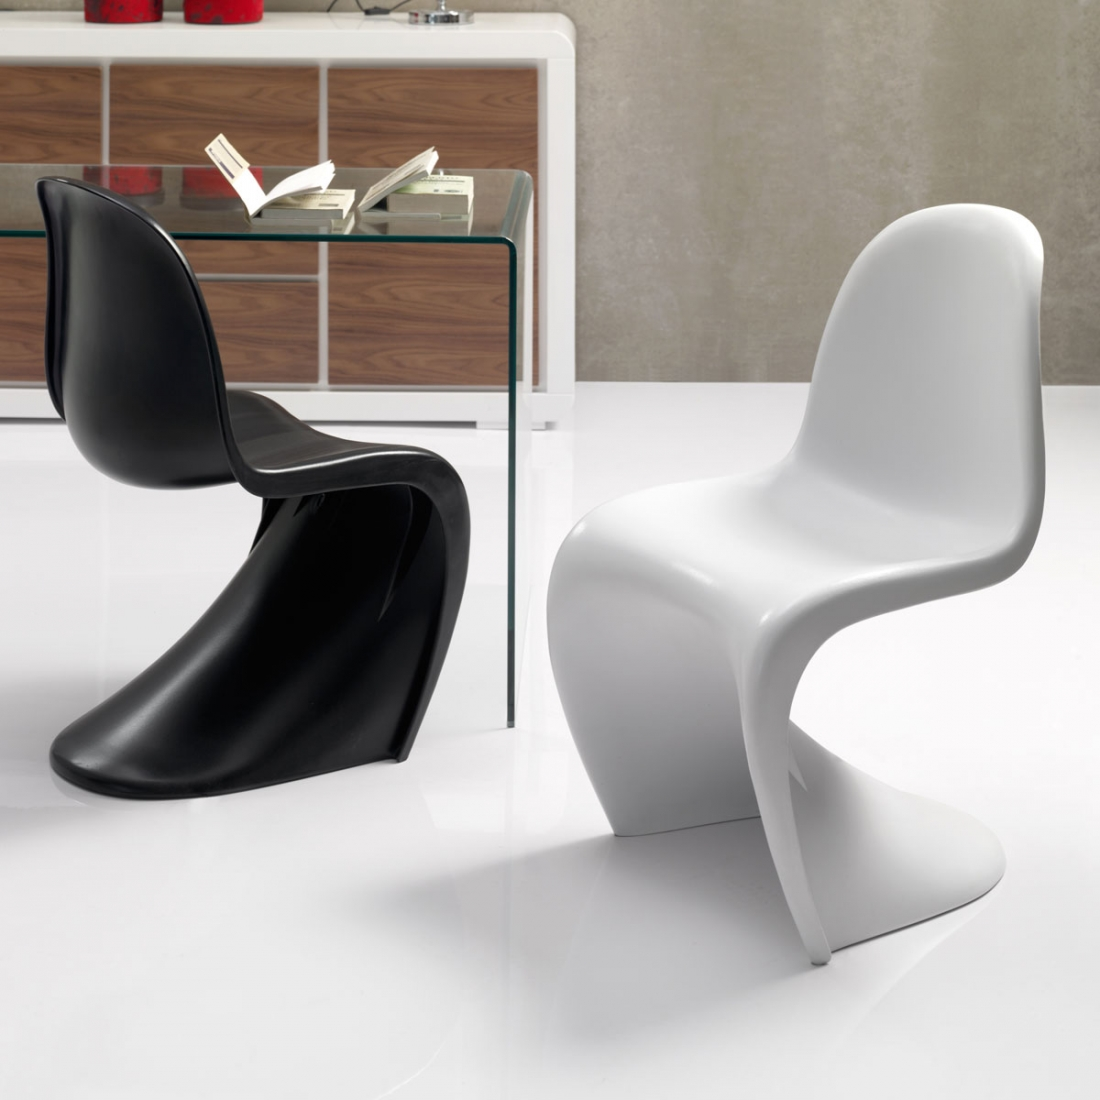 Chaise design Neverr | Zendart Design Sélection